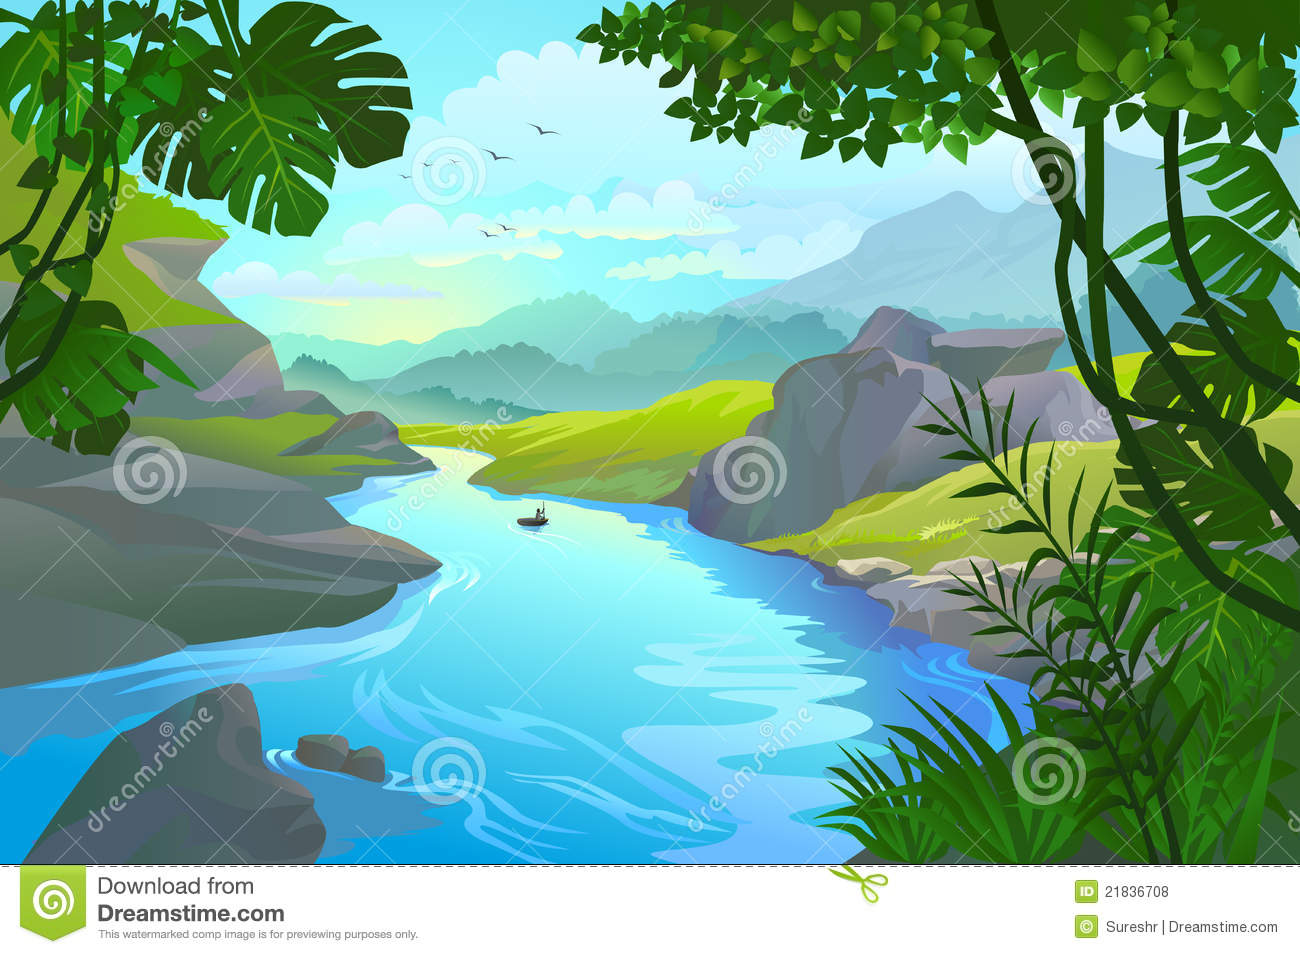 Mountain River Clipart - Clipart Kid